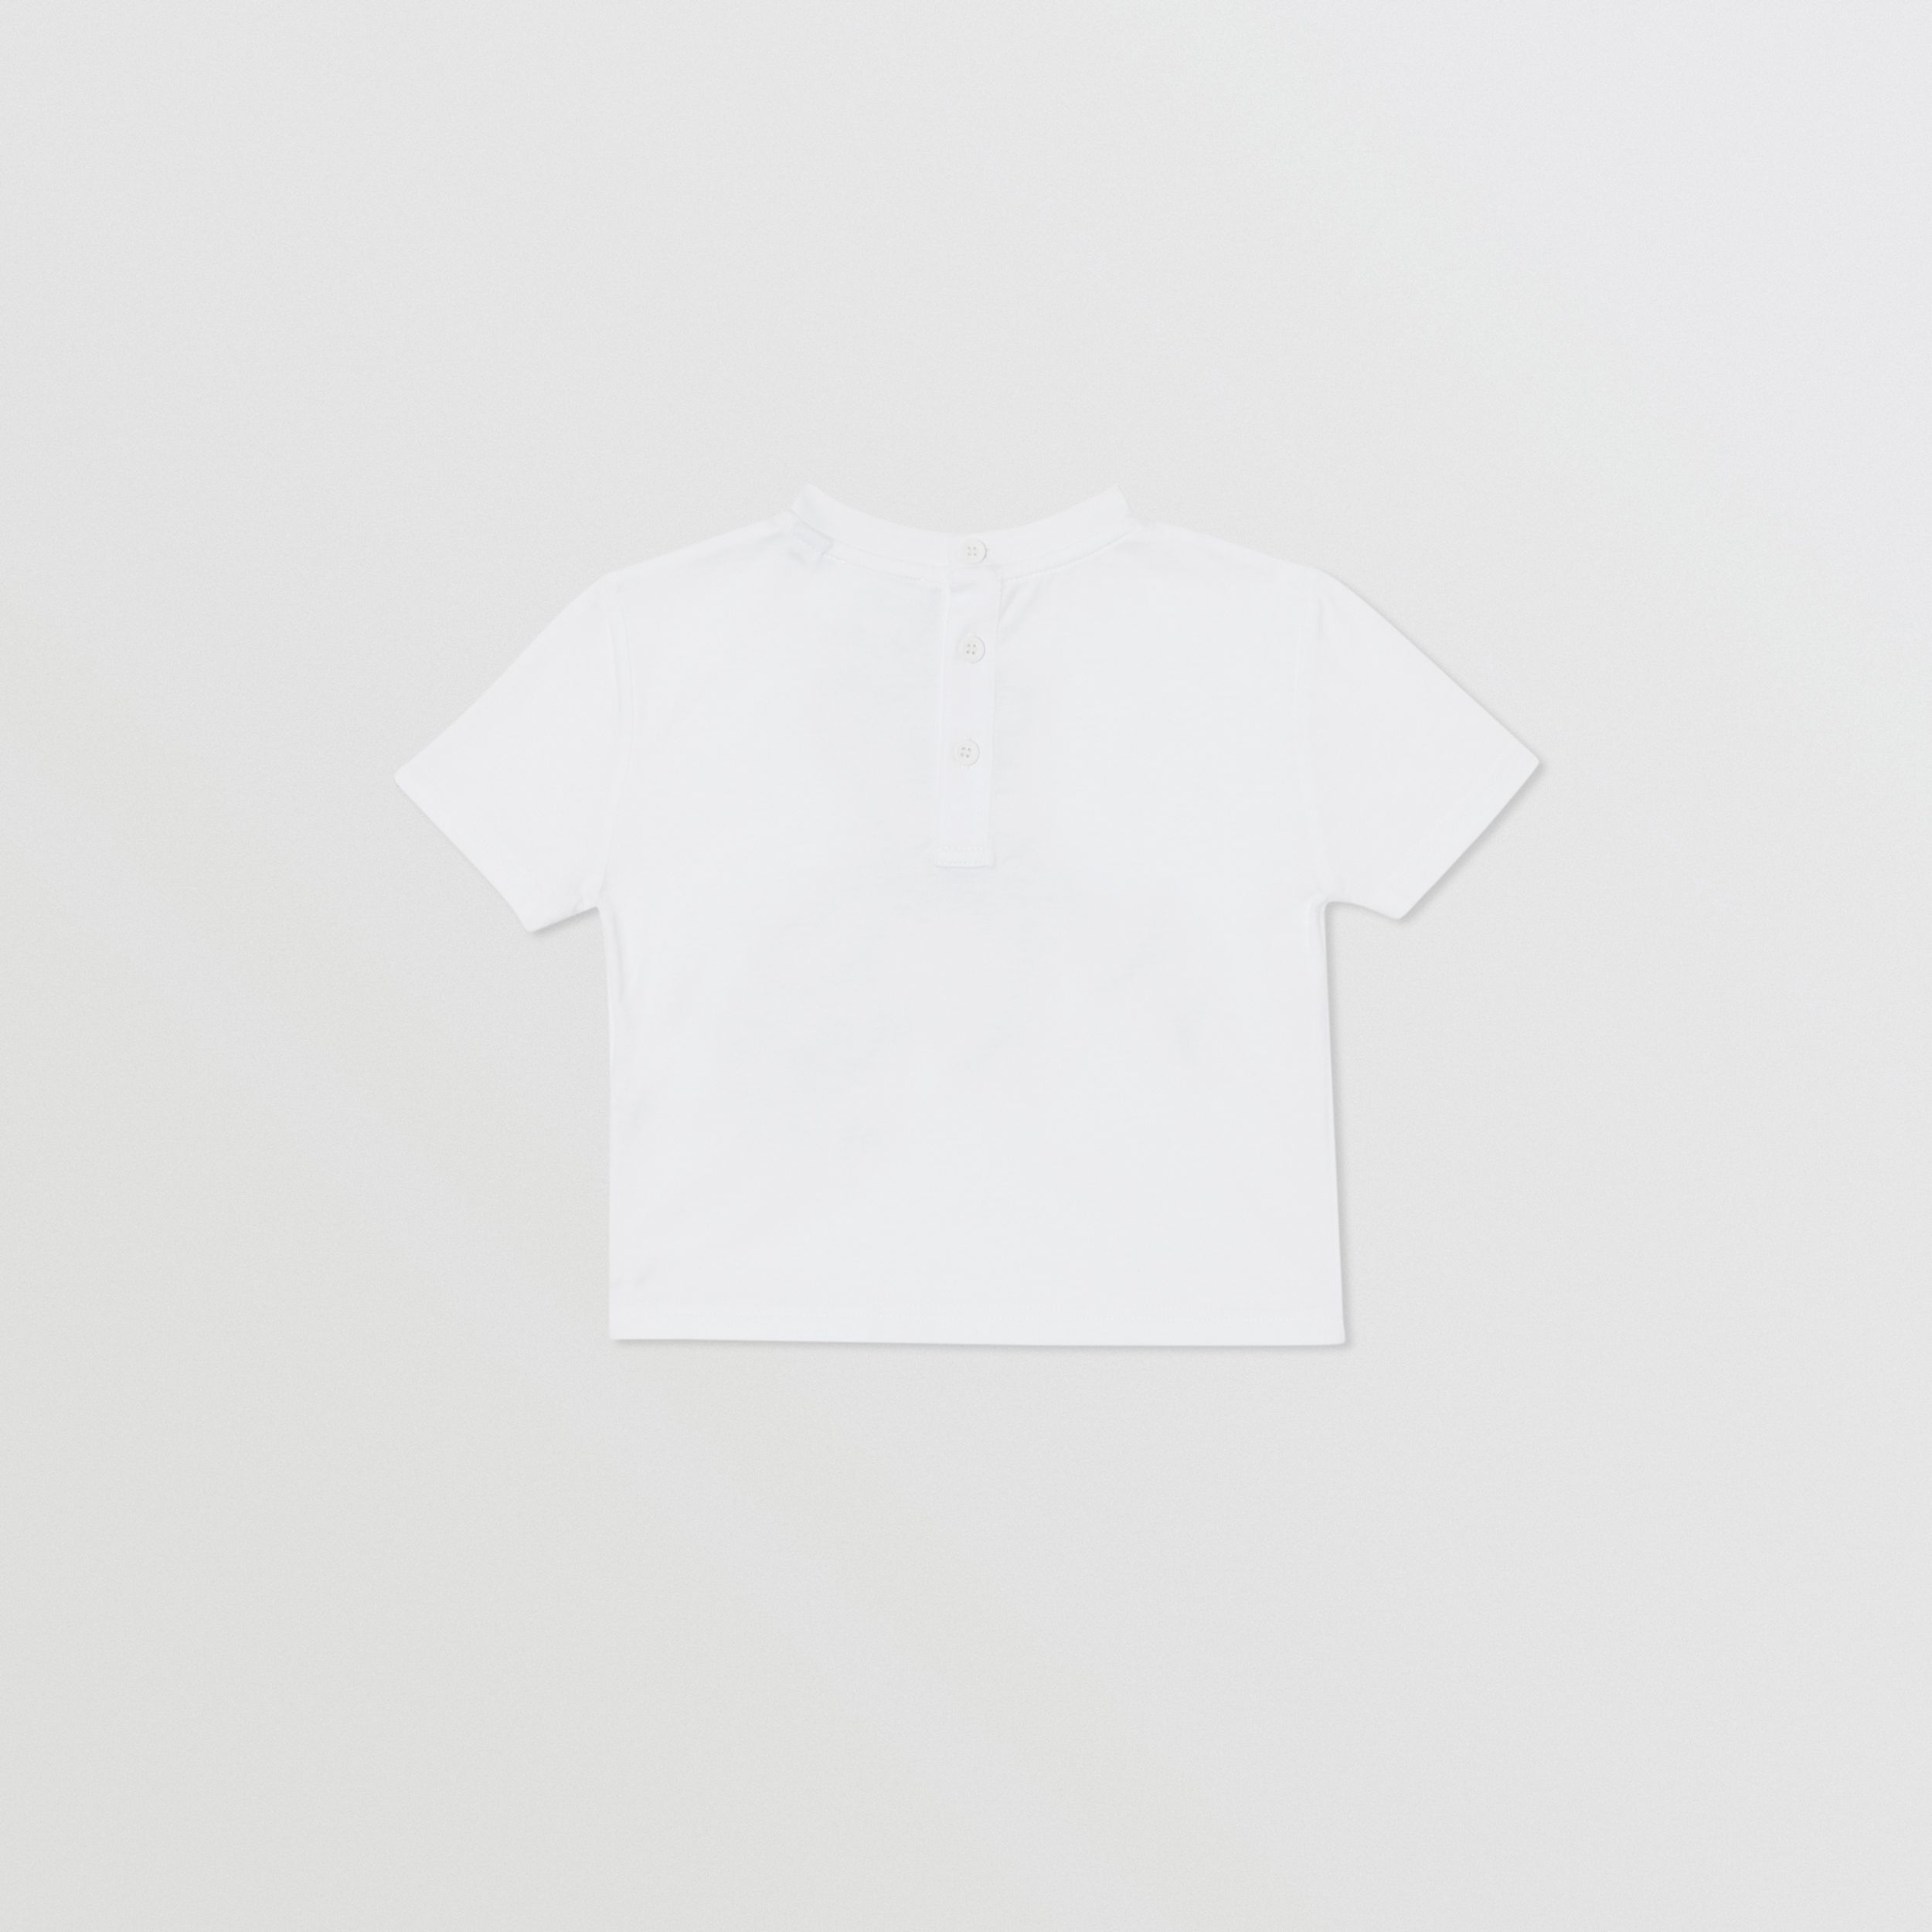 Thomas Bear Appliqué Cotton T-shirt in White - Children | Burberry United Kingdom - 4